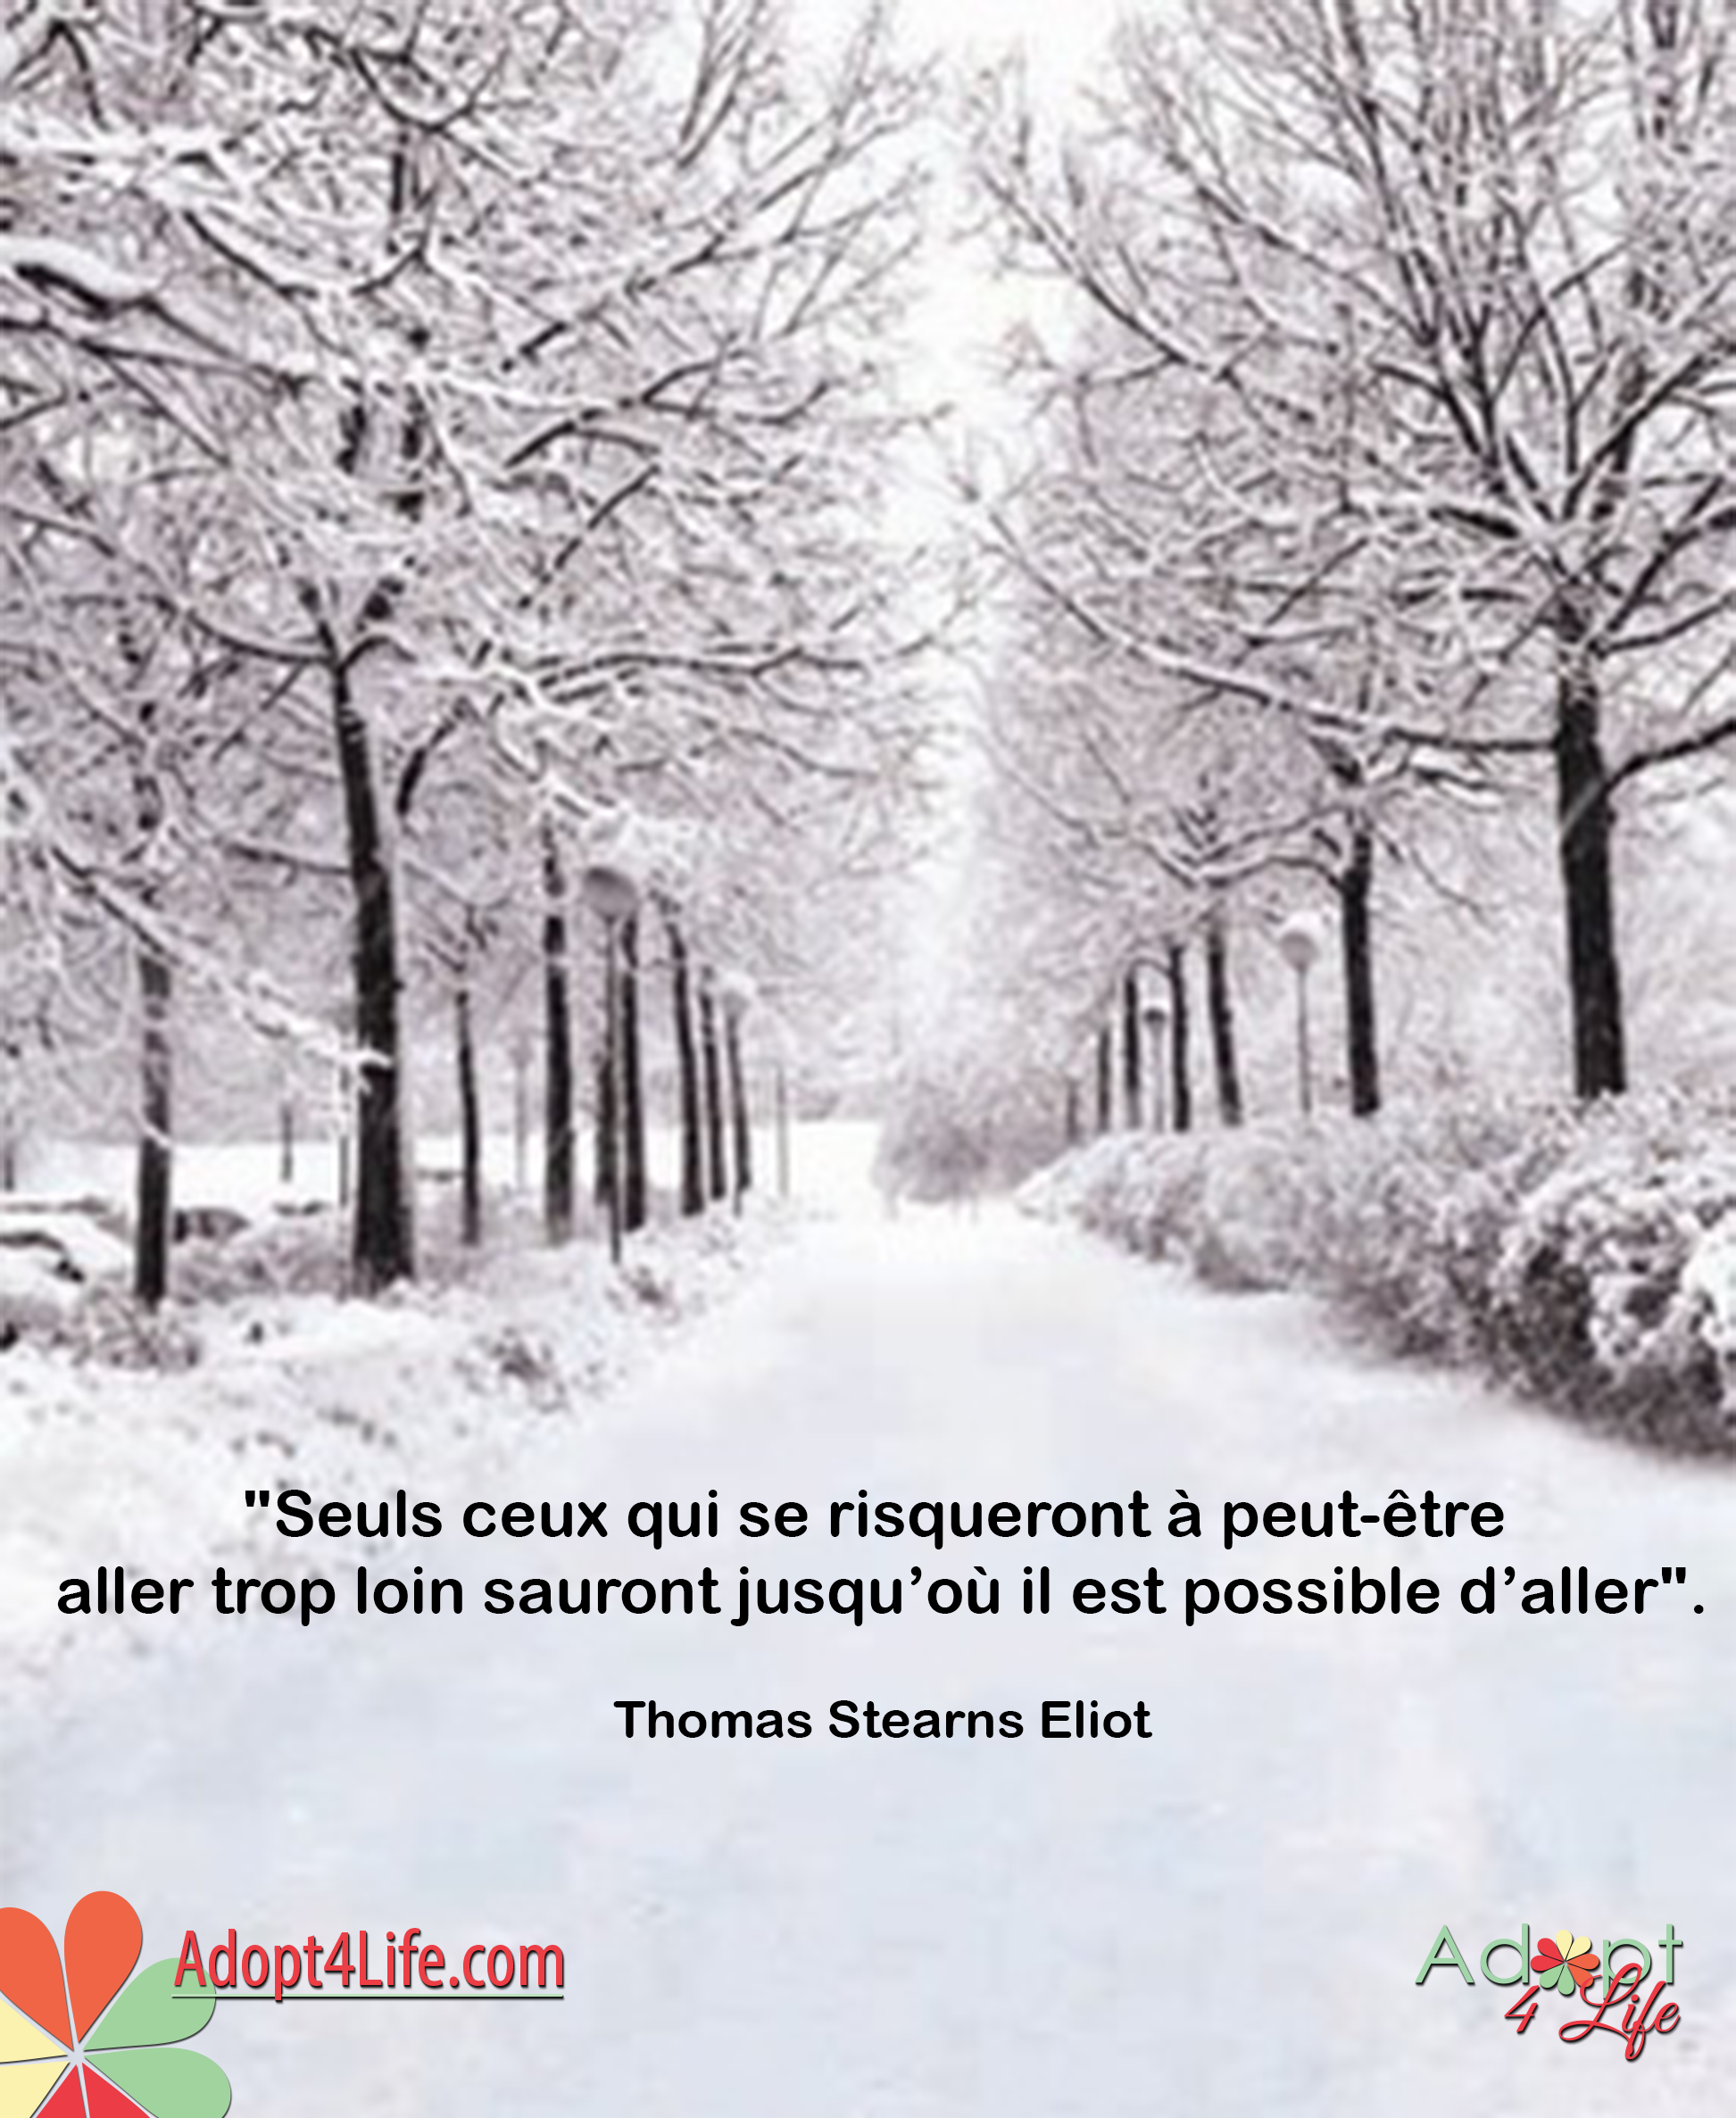 Facebook_AdoptionQuote_French_027_Dec2014_png.png